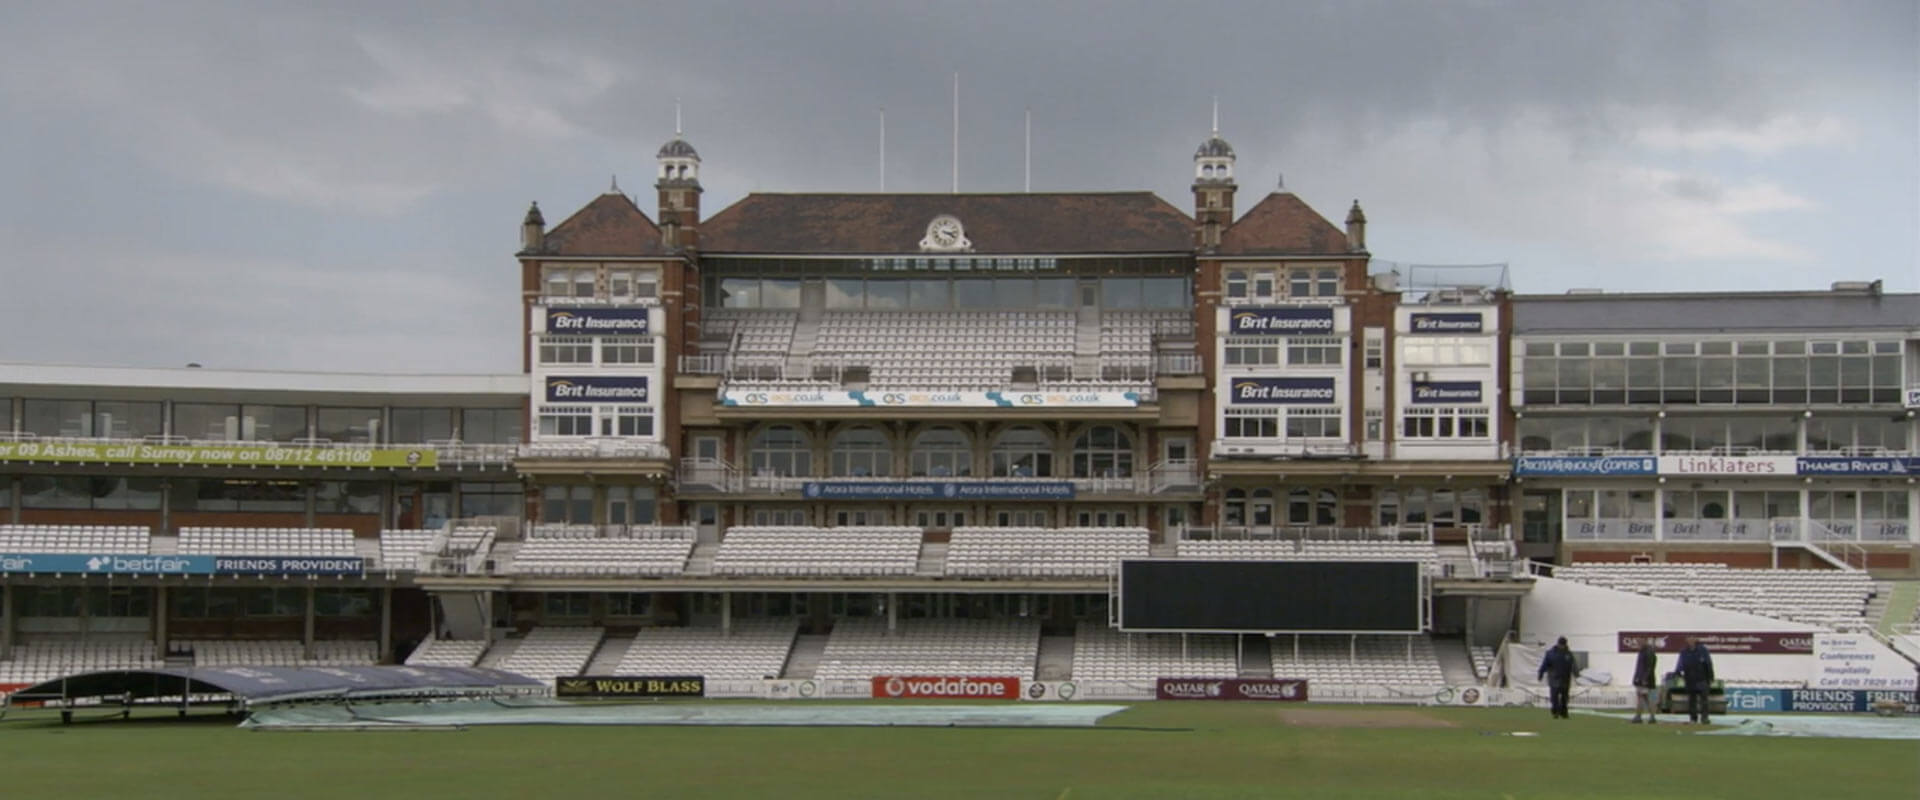 Zoonga - One stop shop for tickets to events, cricket